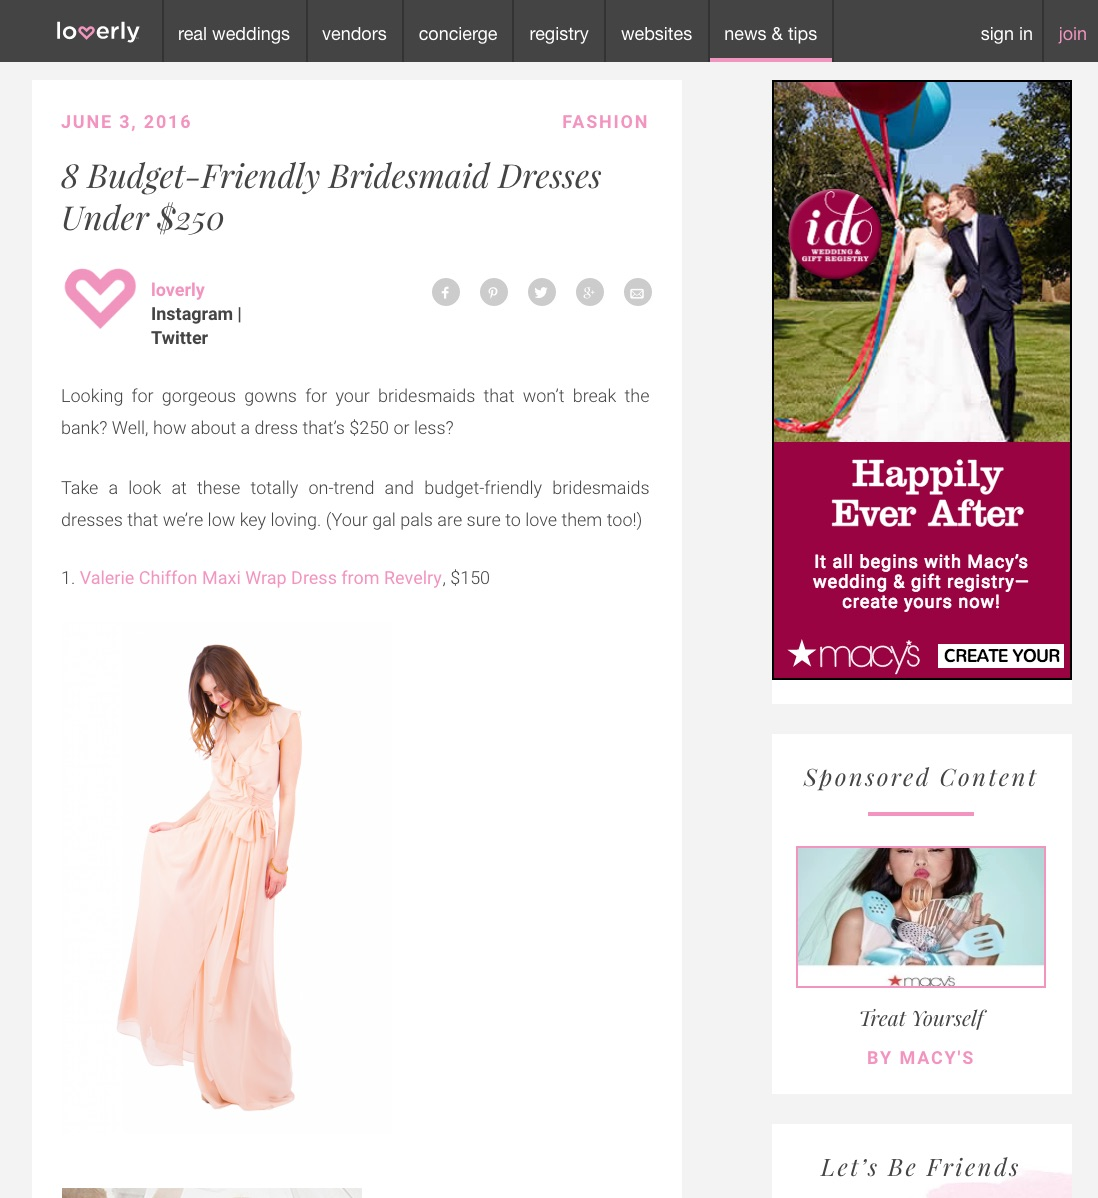 loverlyBridesmaidDresses